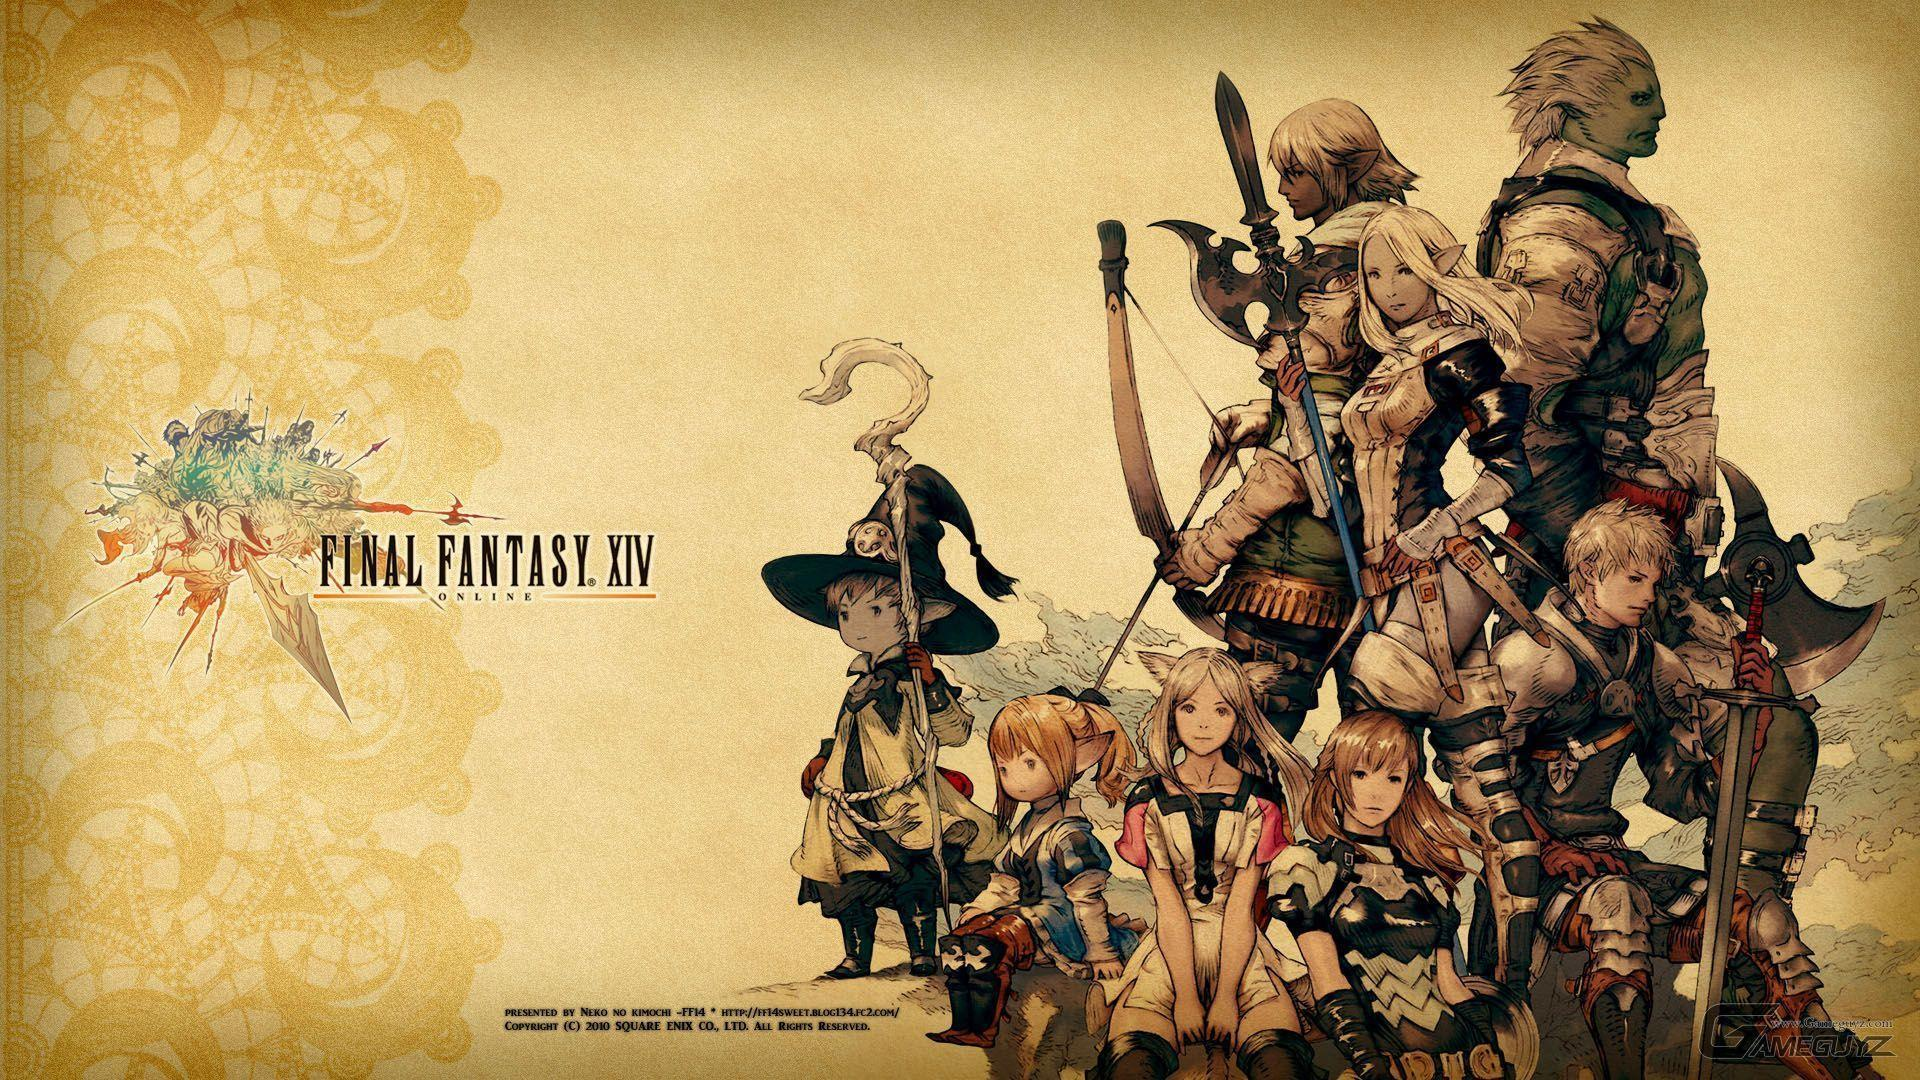 Final fantasy xiv wallpapers wallpaper cave ffxiv wallpaper 1080p viewing gallery voltagebd Image collections